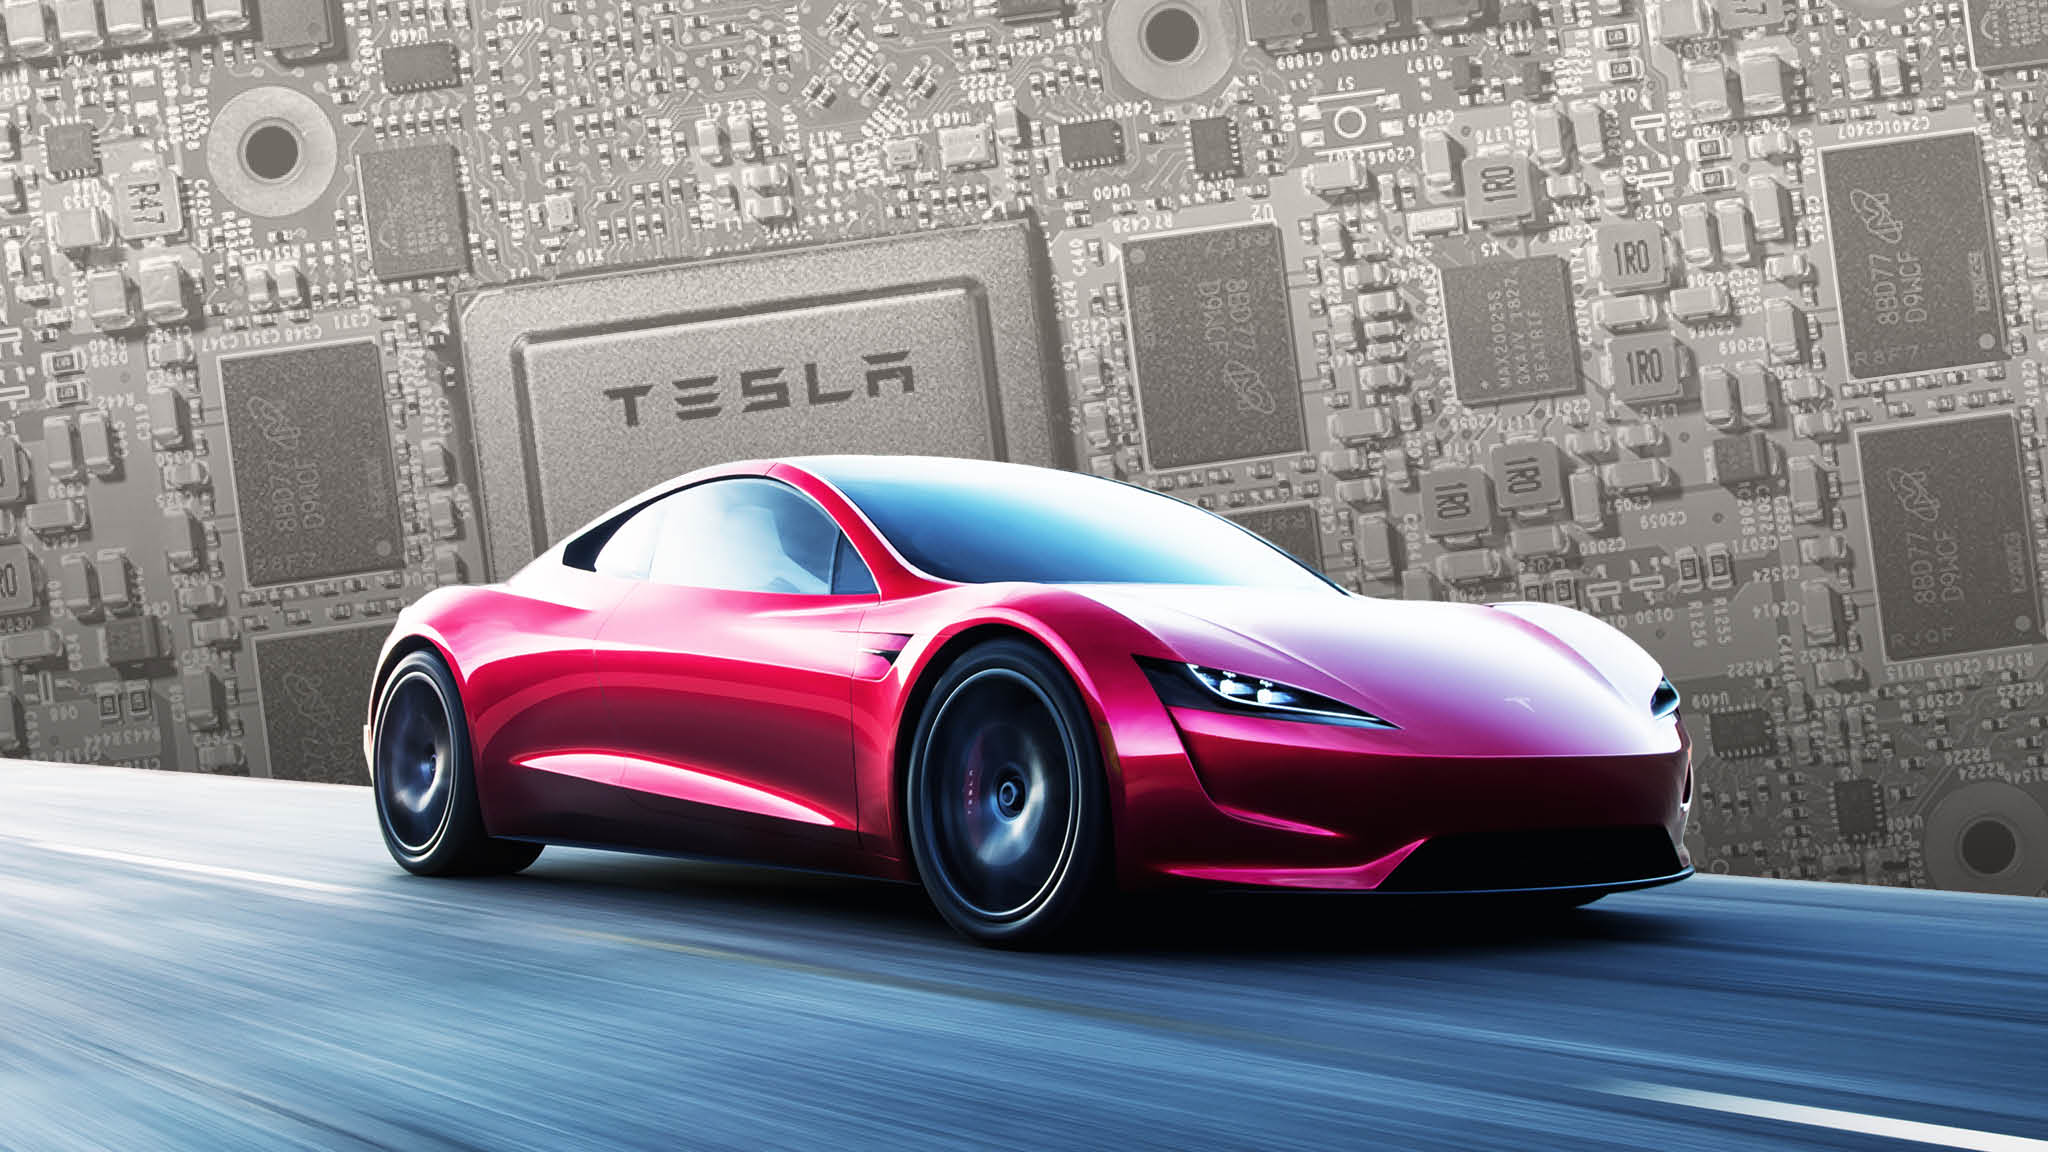 Tesla The Iphone Of Electric Vehicles Or Just Another Car Company Financial Times